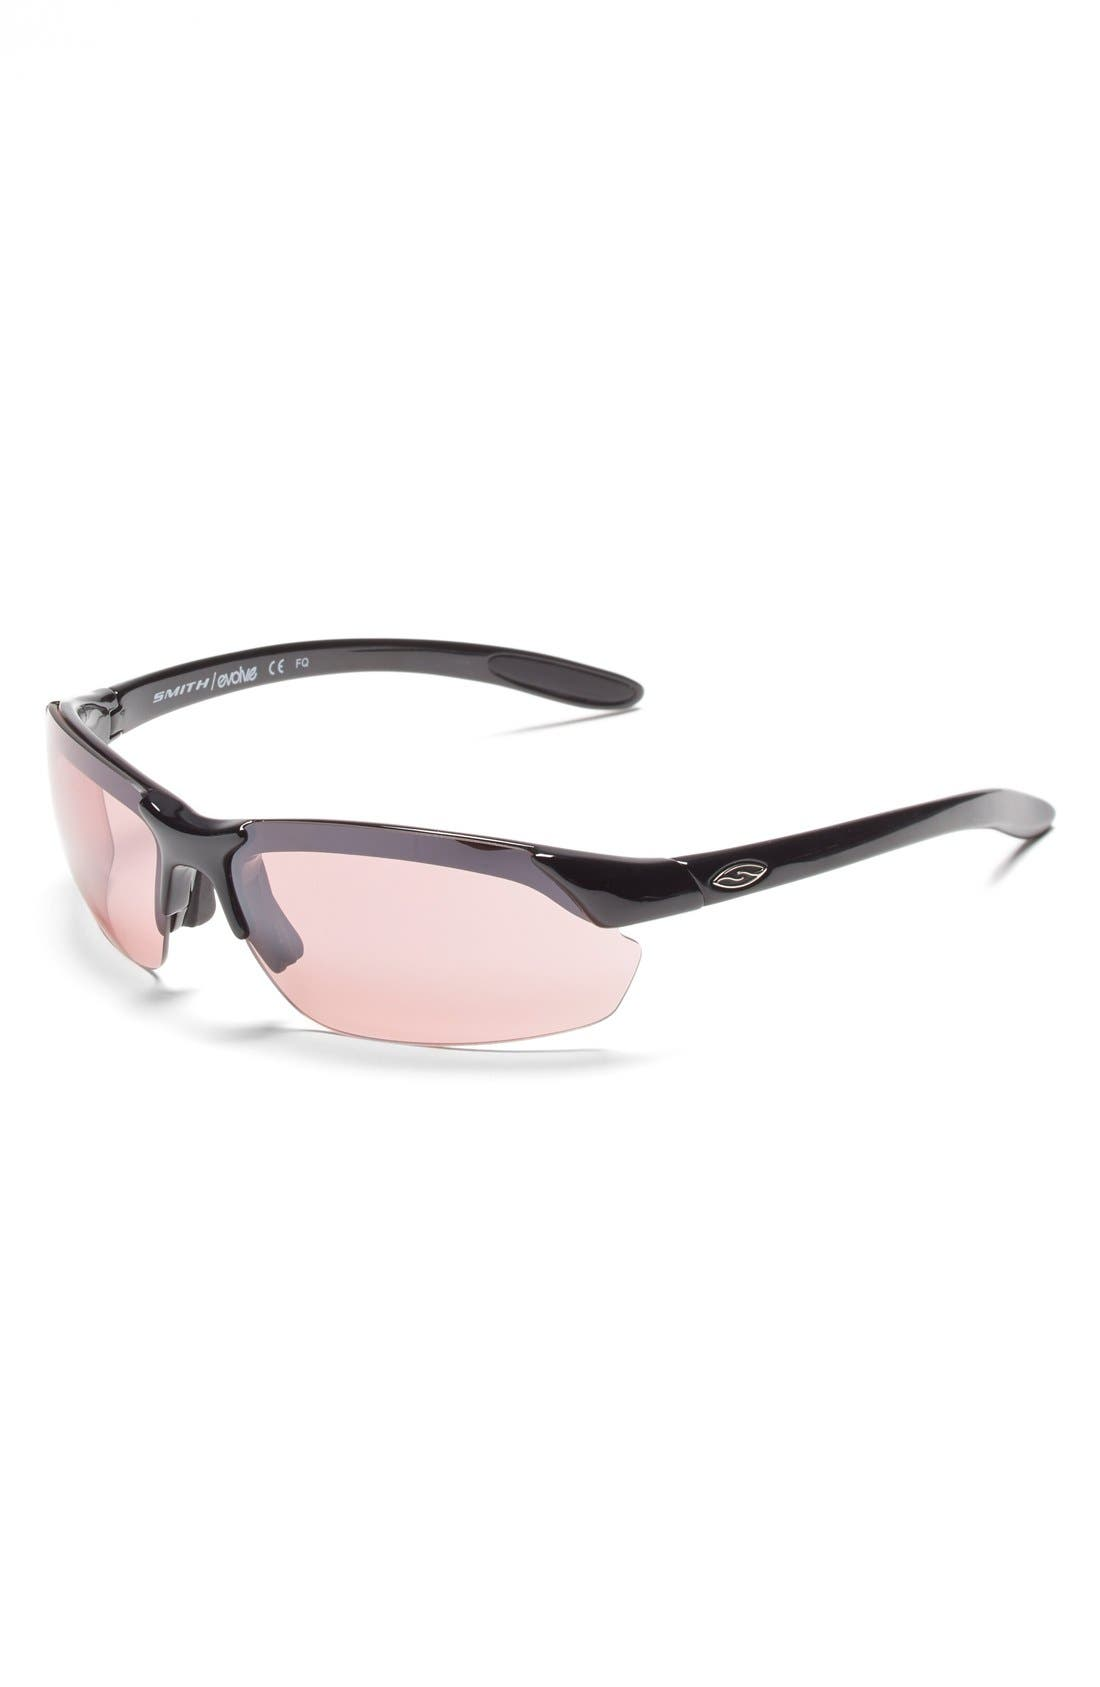 'Parallel Max' 65mm Polarized Sunglasses,                             Alternate thumbnail 5, color,                             001